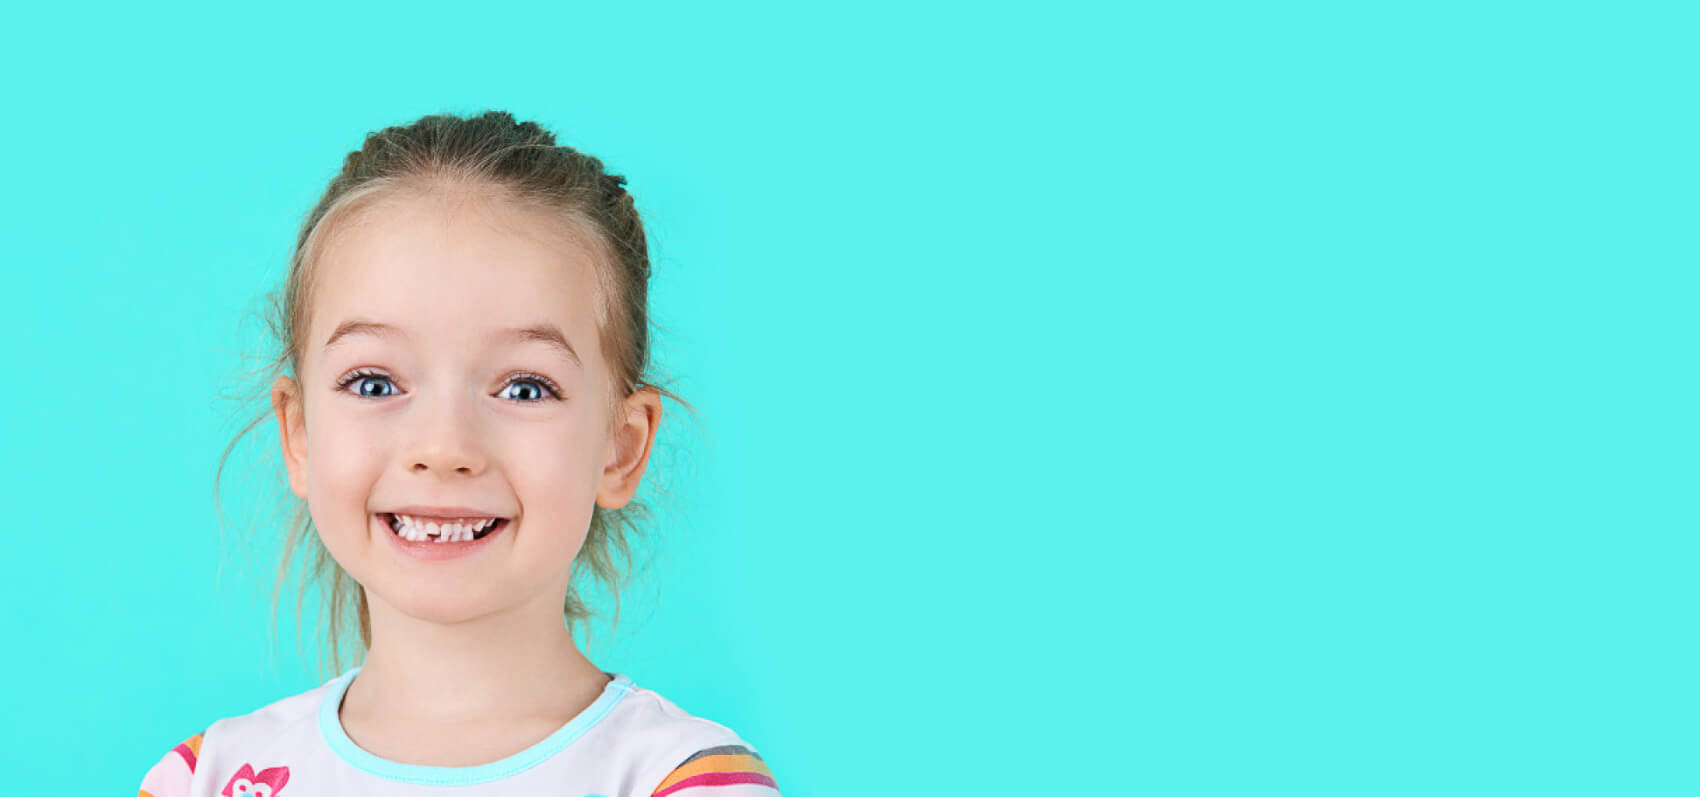 pediatric dentist in pleasanton